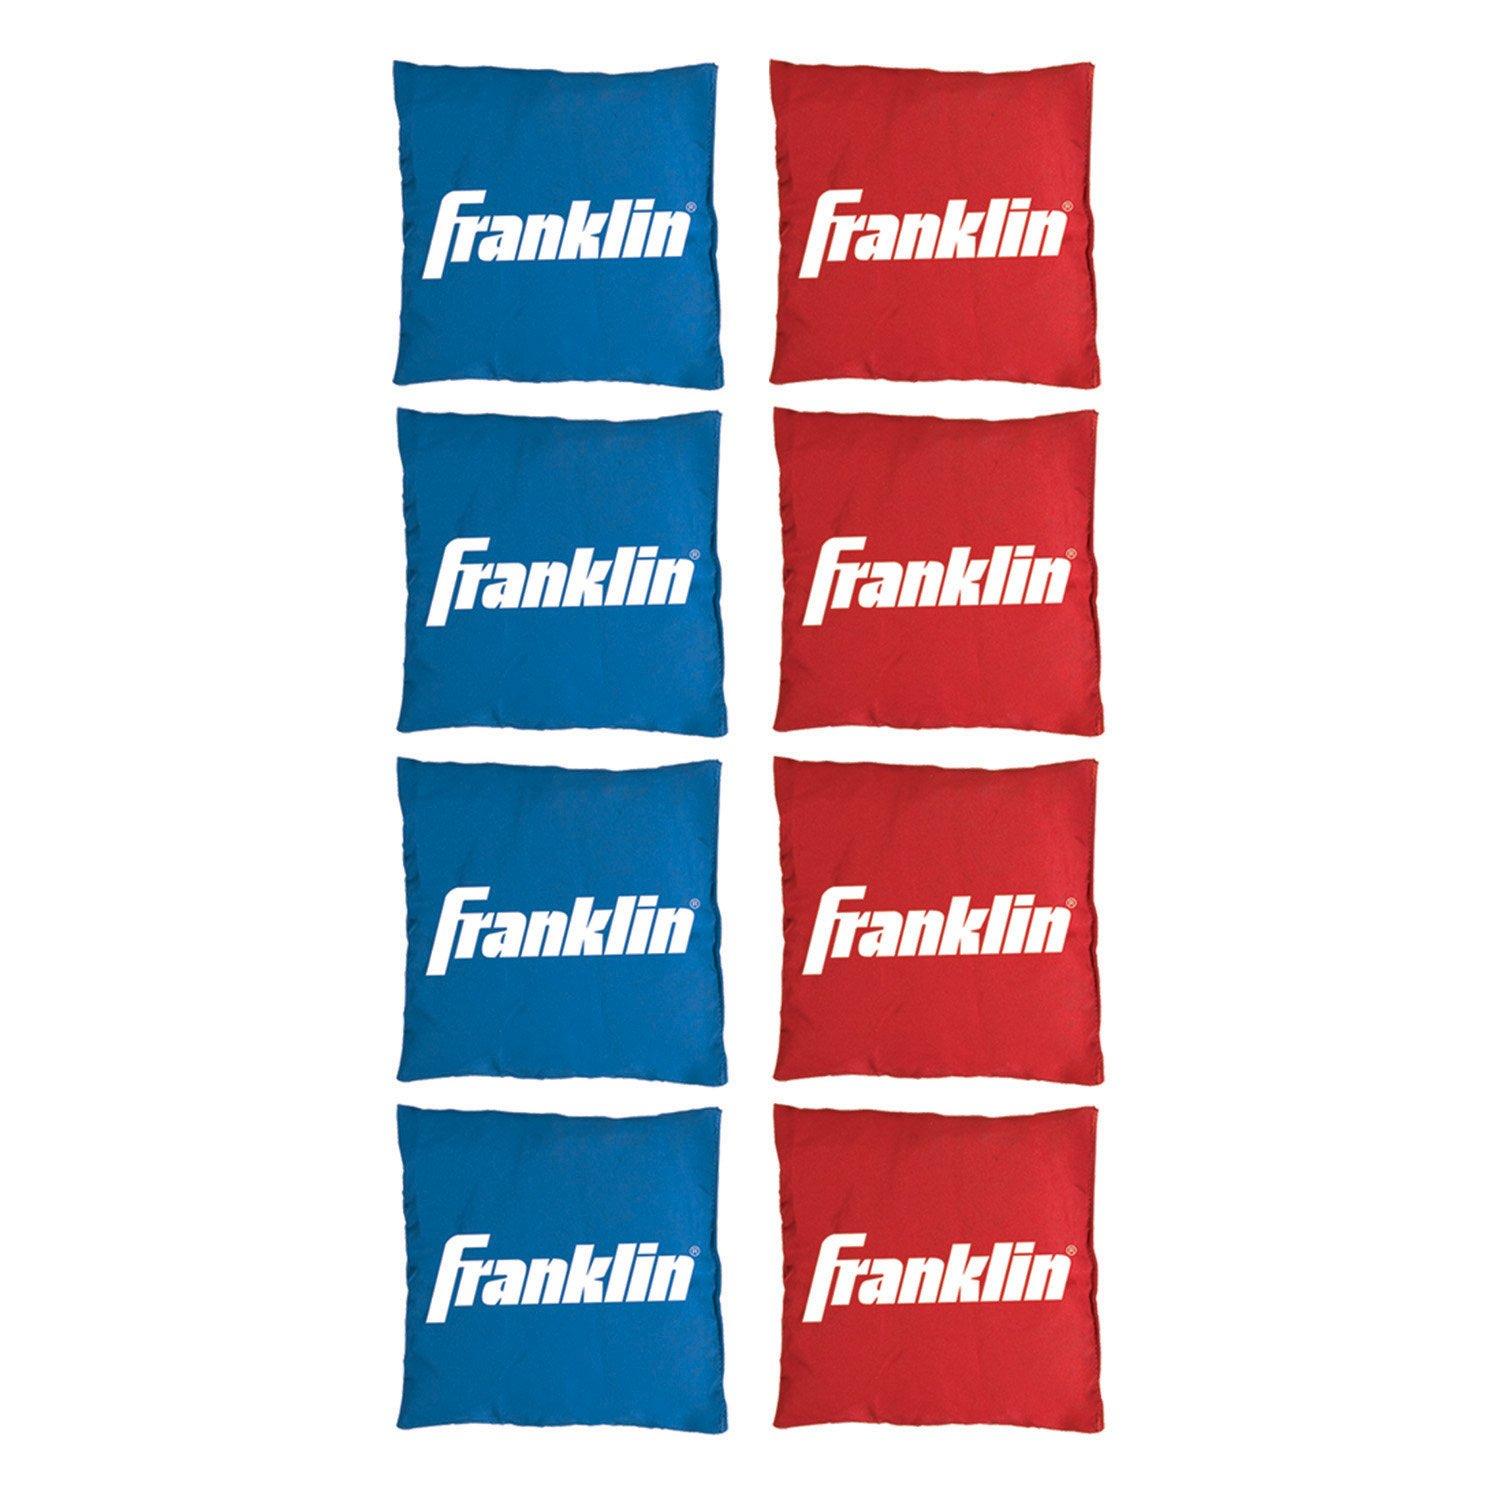 Franklin Sports Replacement Bean Bags for Cornhole - Includes 8 Bean Bags - 4 inch x 4 inch